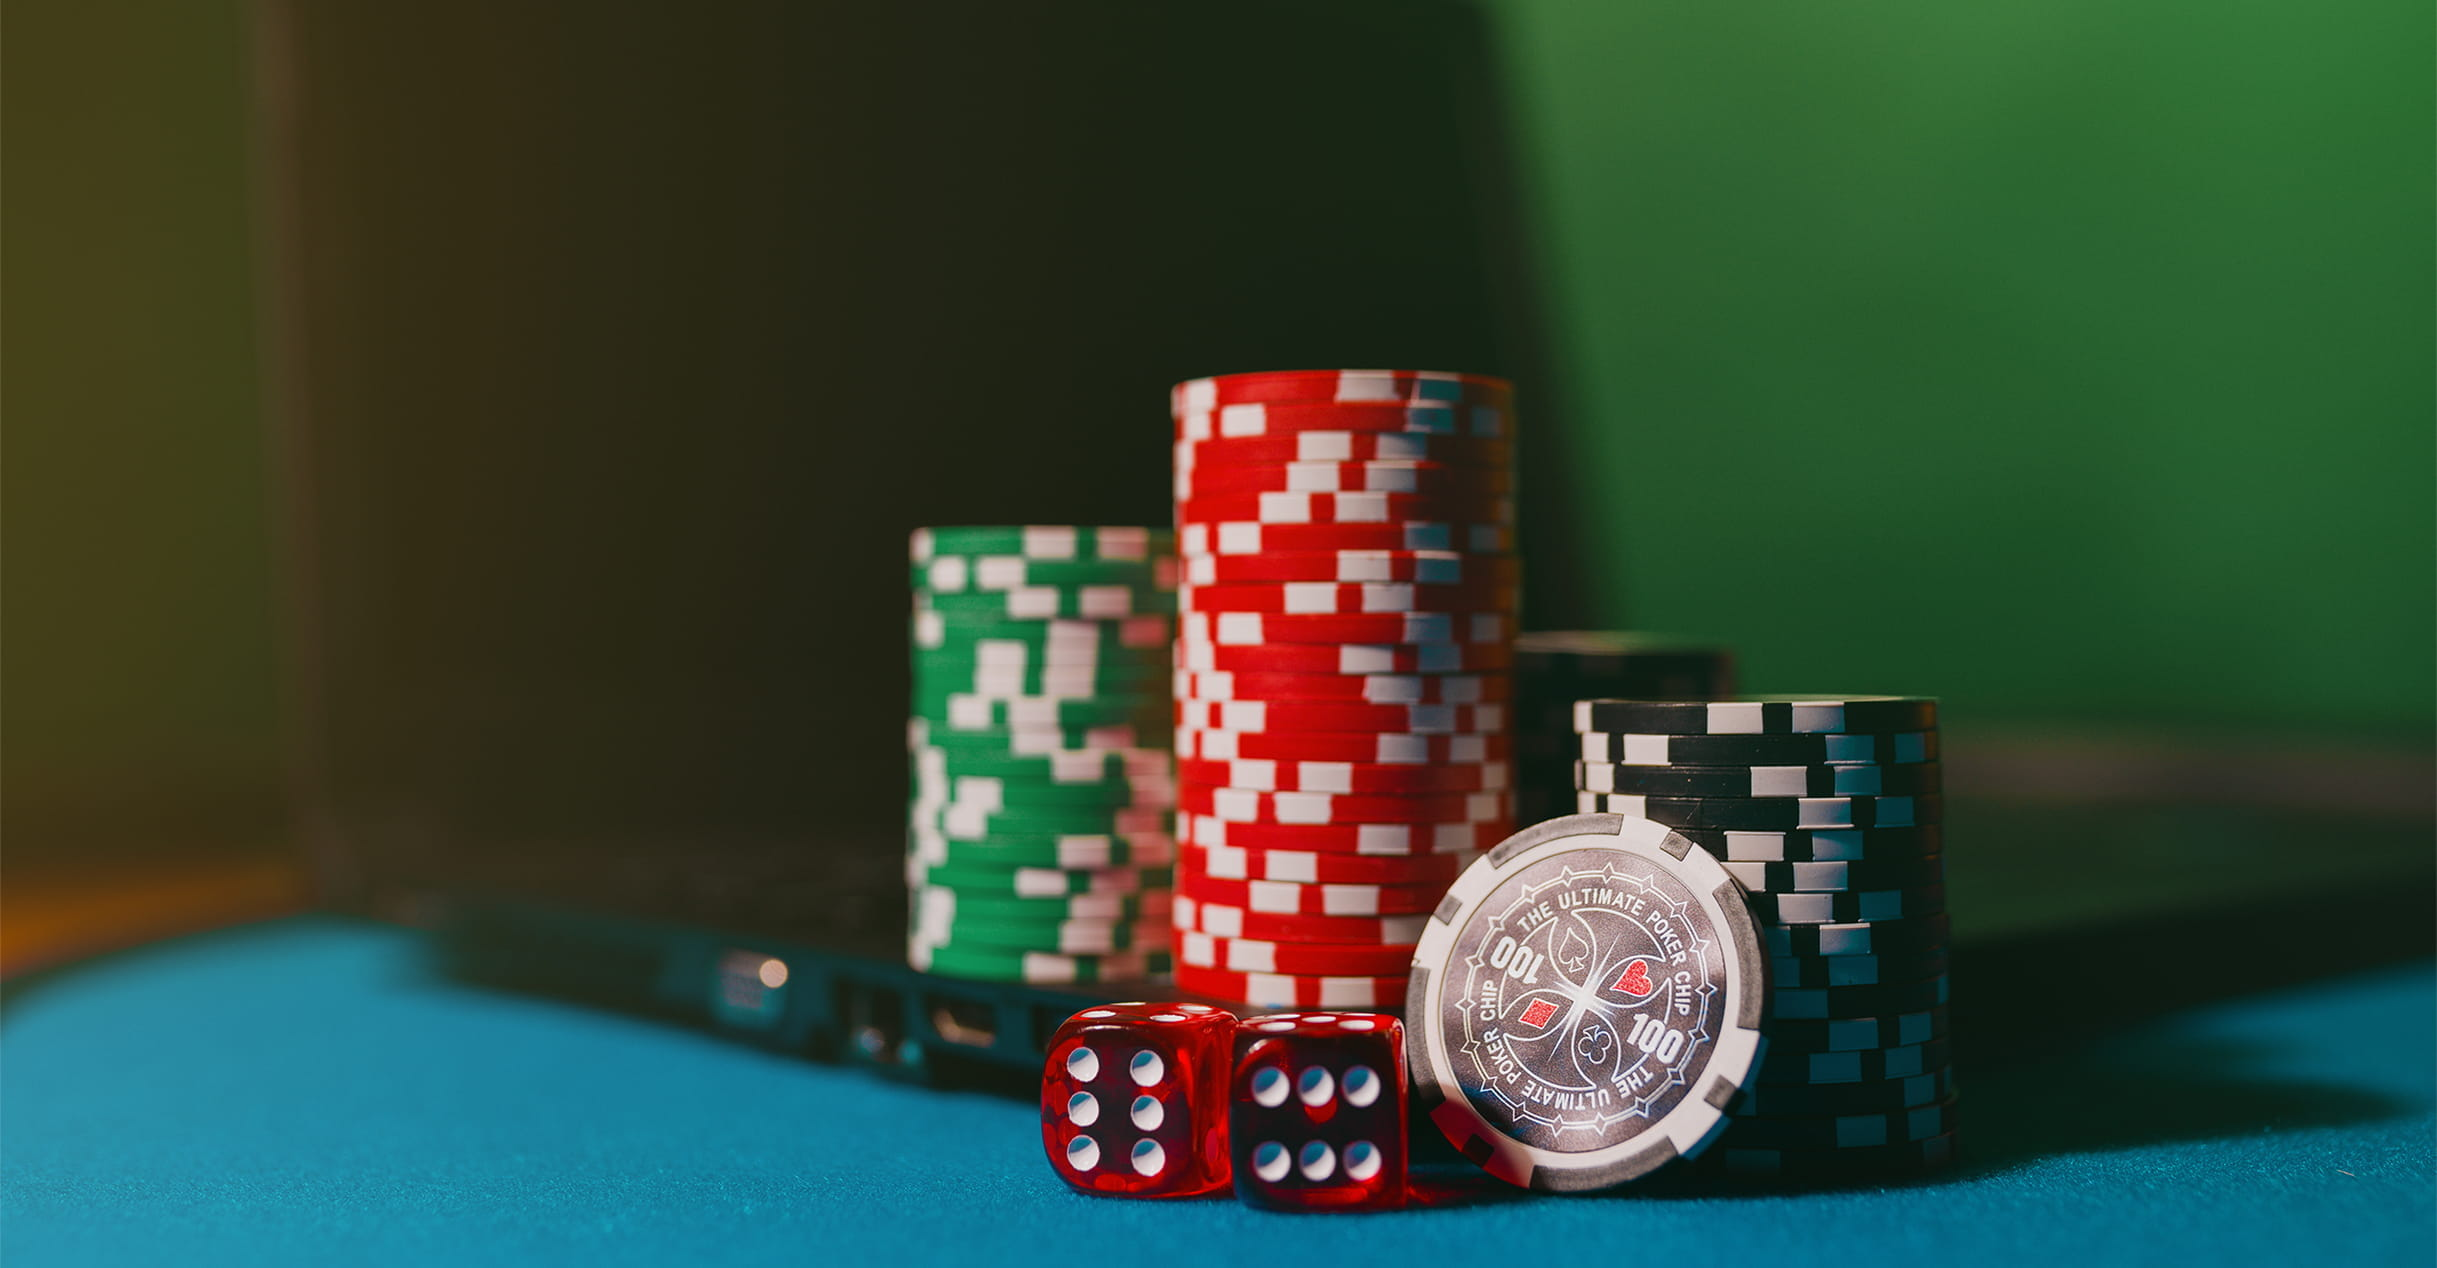 Get The Winning Tips For Casino Here